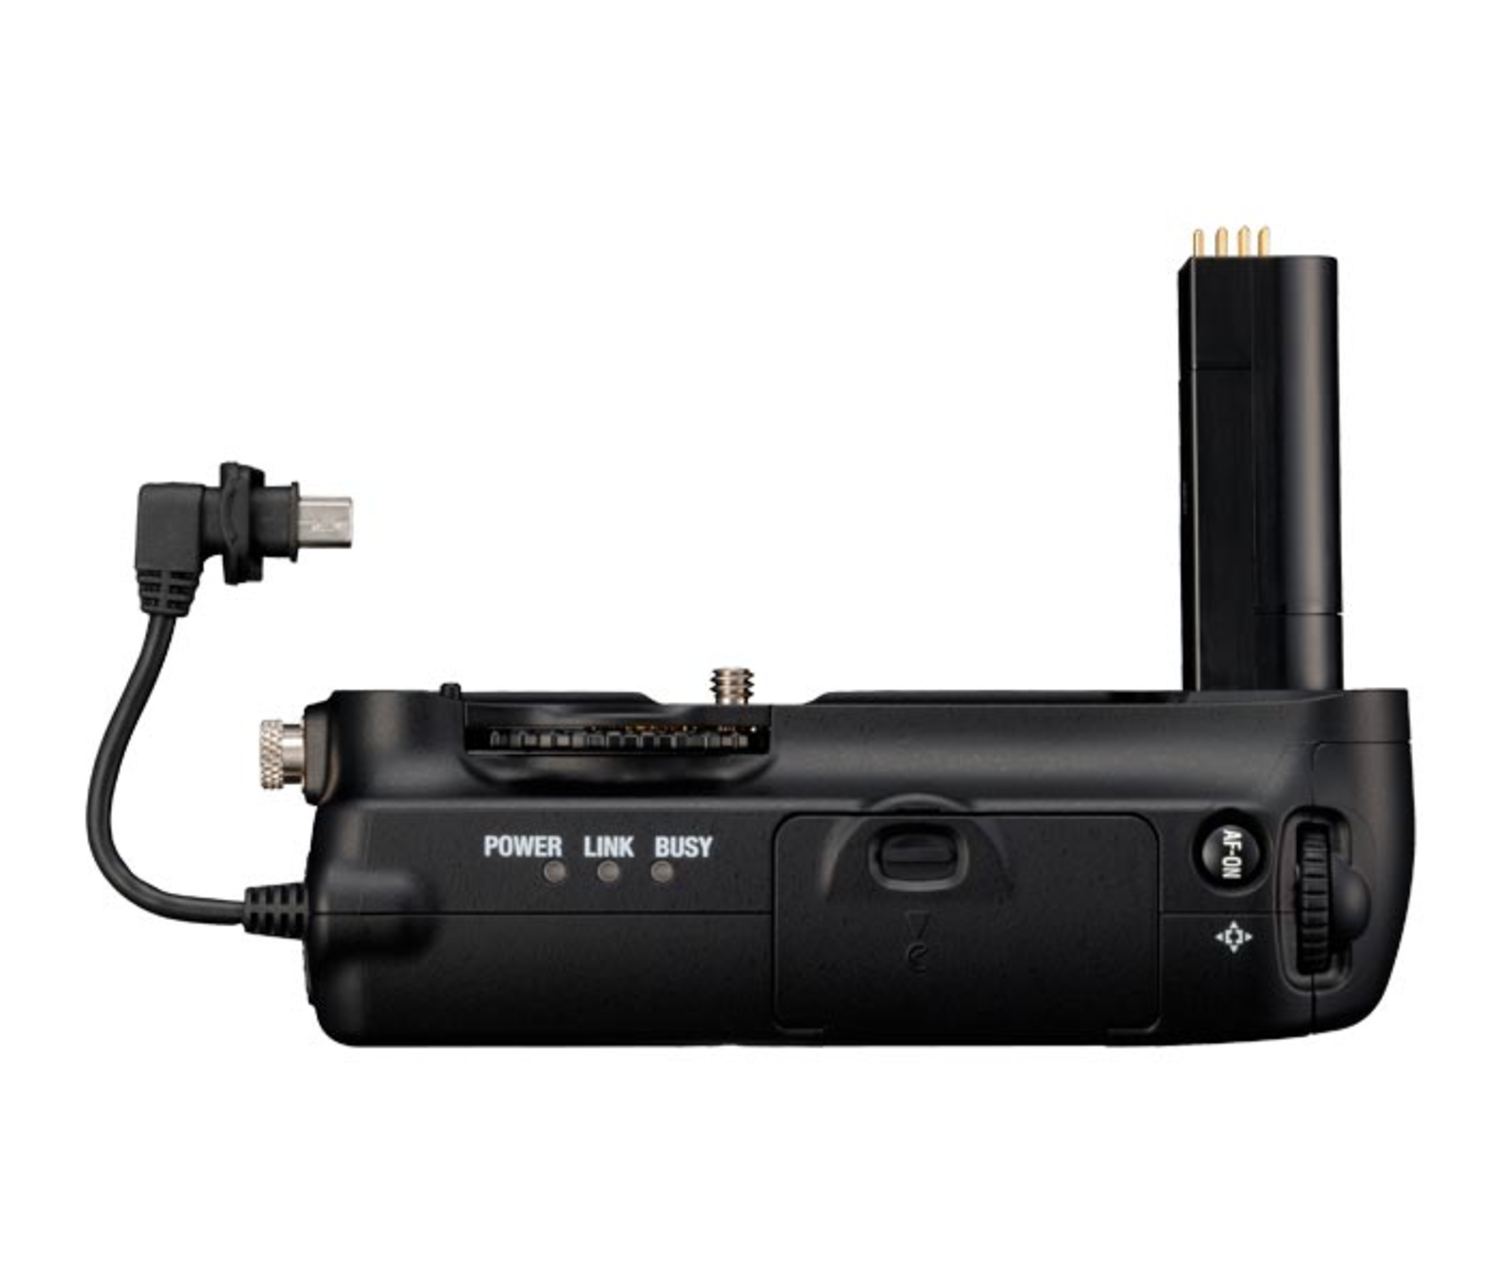 NIKON Wireless Transmitter